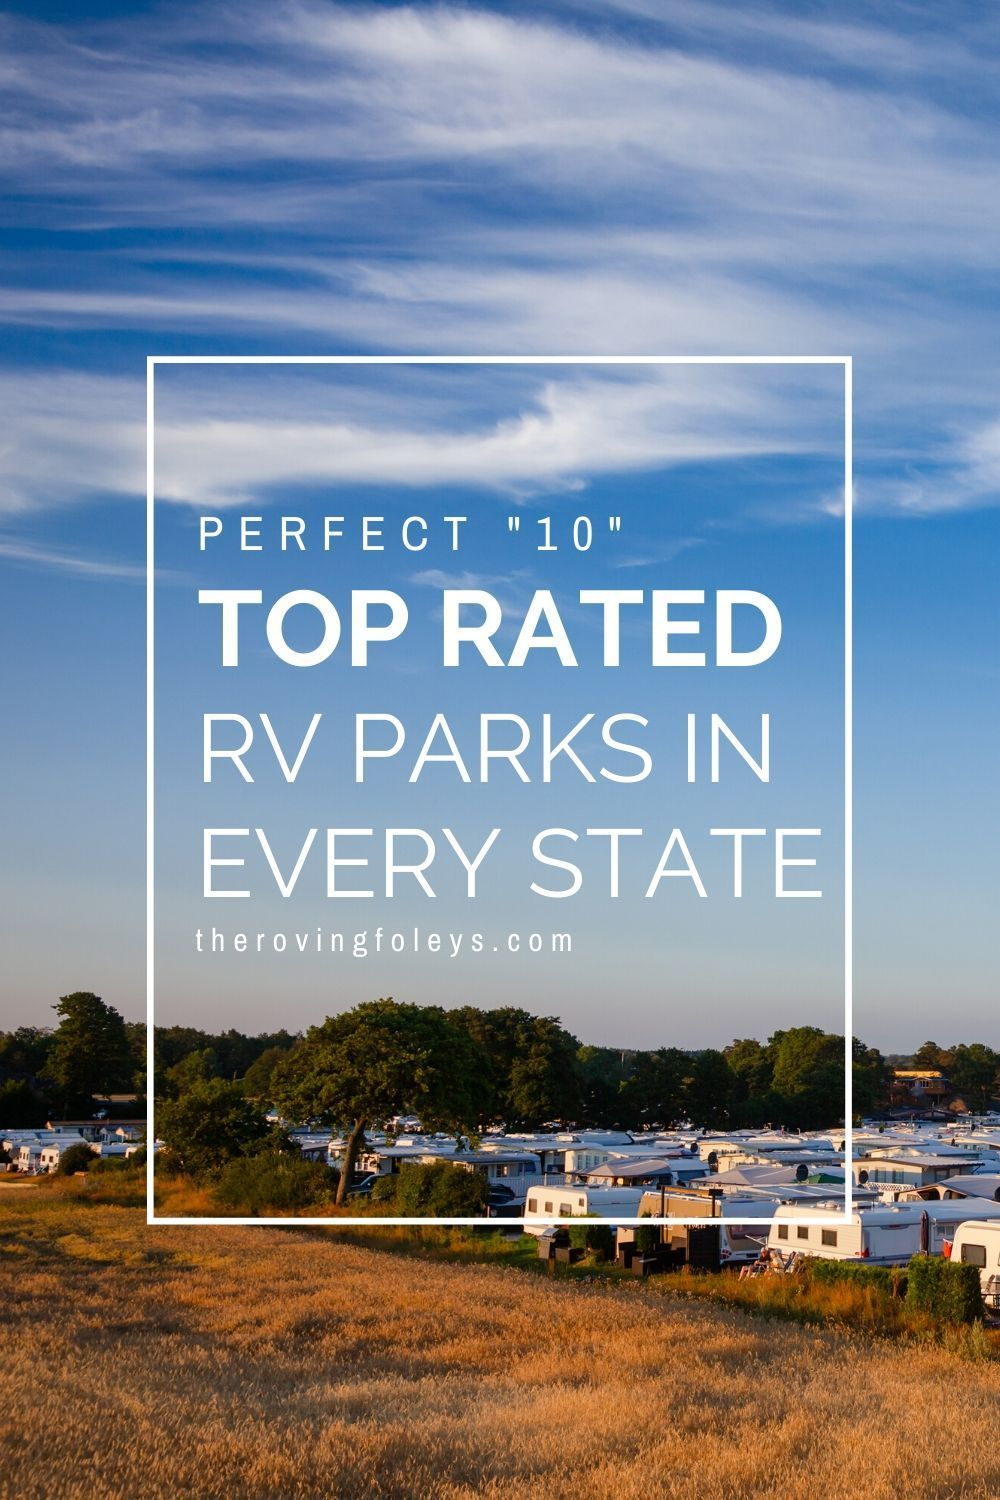 Best Places To Camp In An Rv 2020 Infographics In 2020 Best Places To Camp Rv Travel Destinations Best Rv Parks